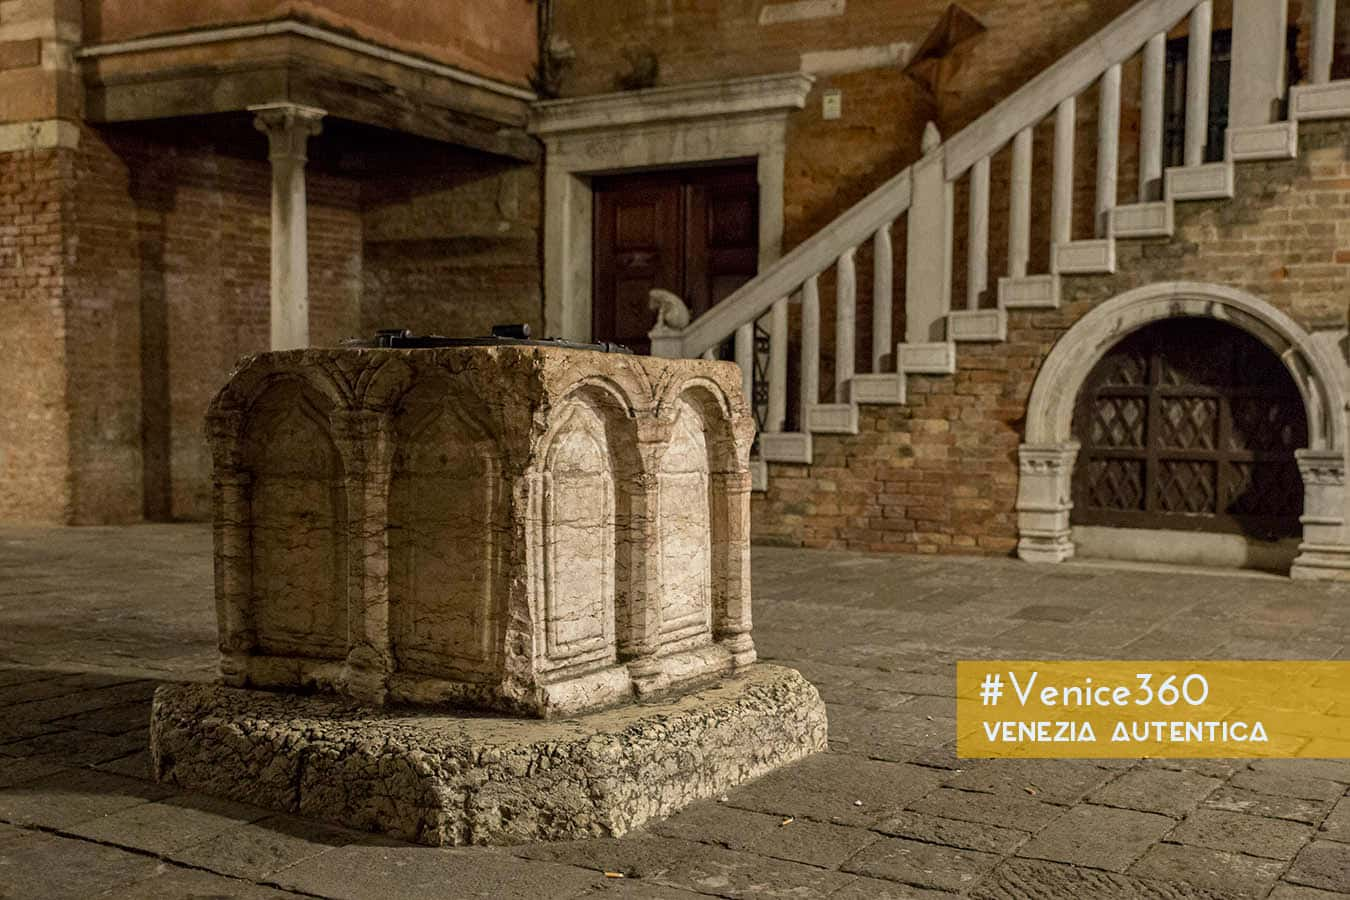 The mind-blowing innovation which allowed venetians to survive and thrive - Venezia Autentica | Discover and Support the Authentic Venice - Since the very beginning of Venice, on the Rivo Alto, venetians could count on plenty of fresh air and fish to feed themselves, but water was missing...